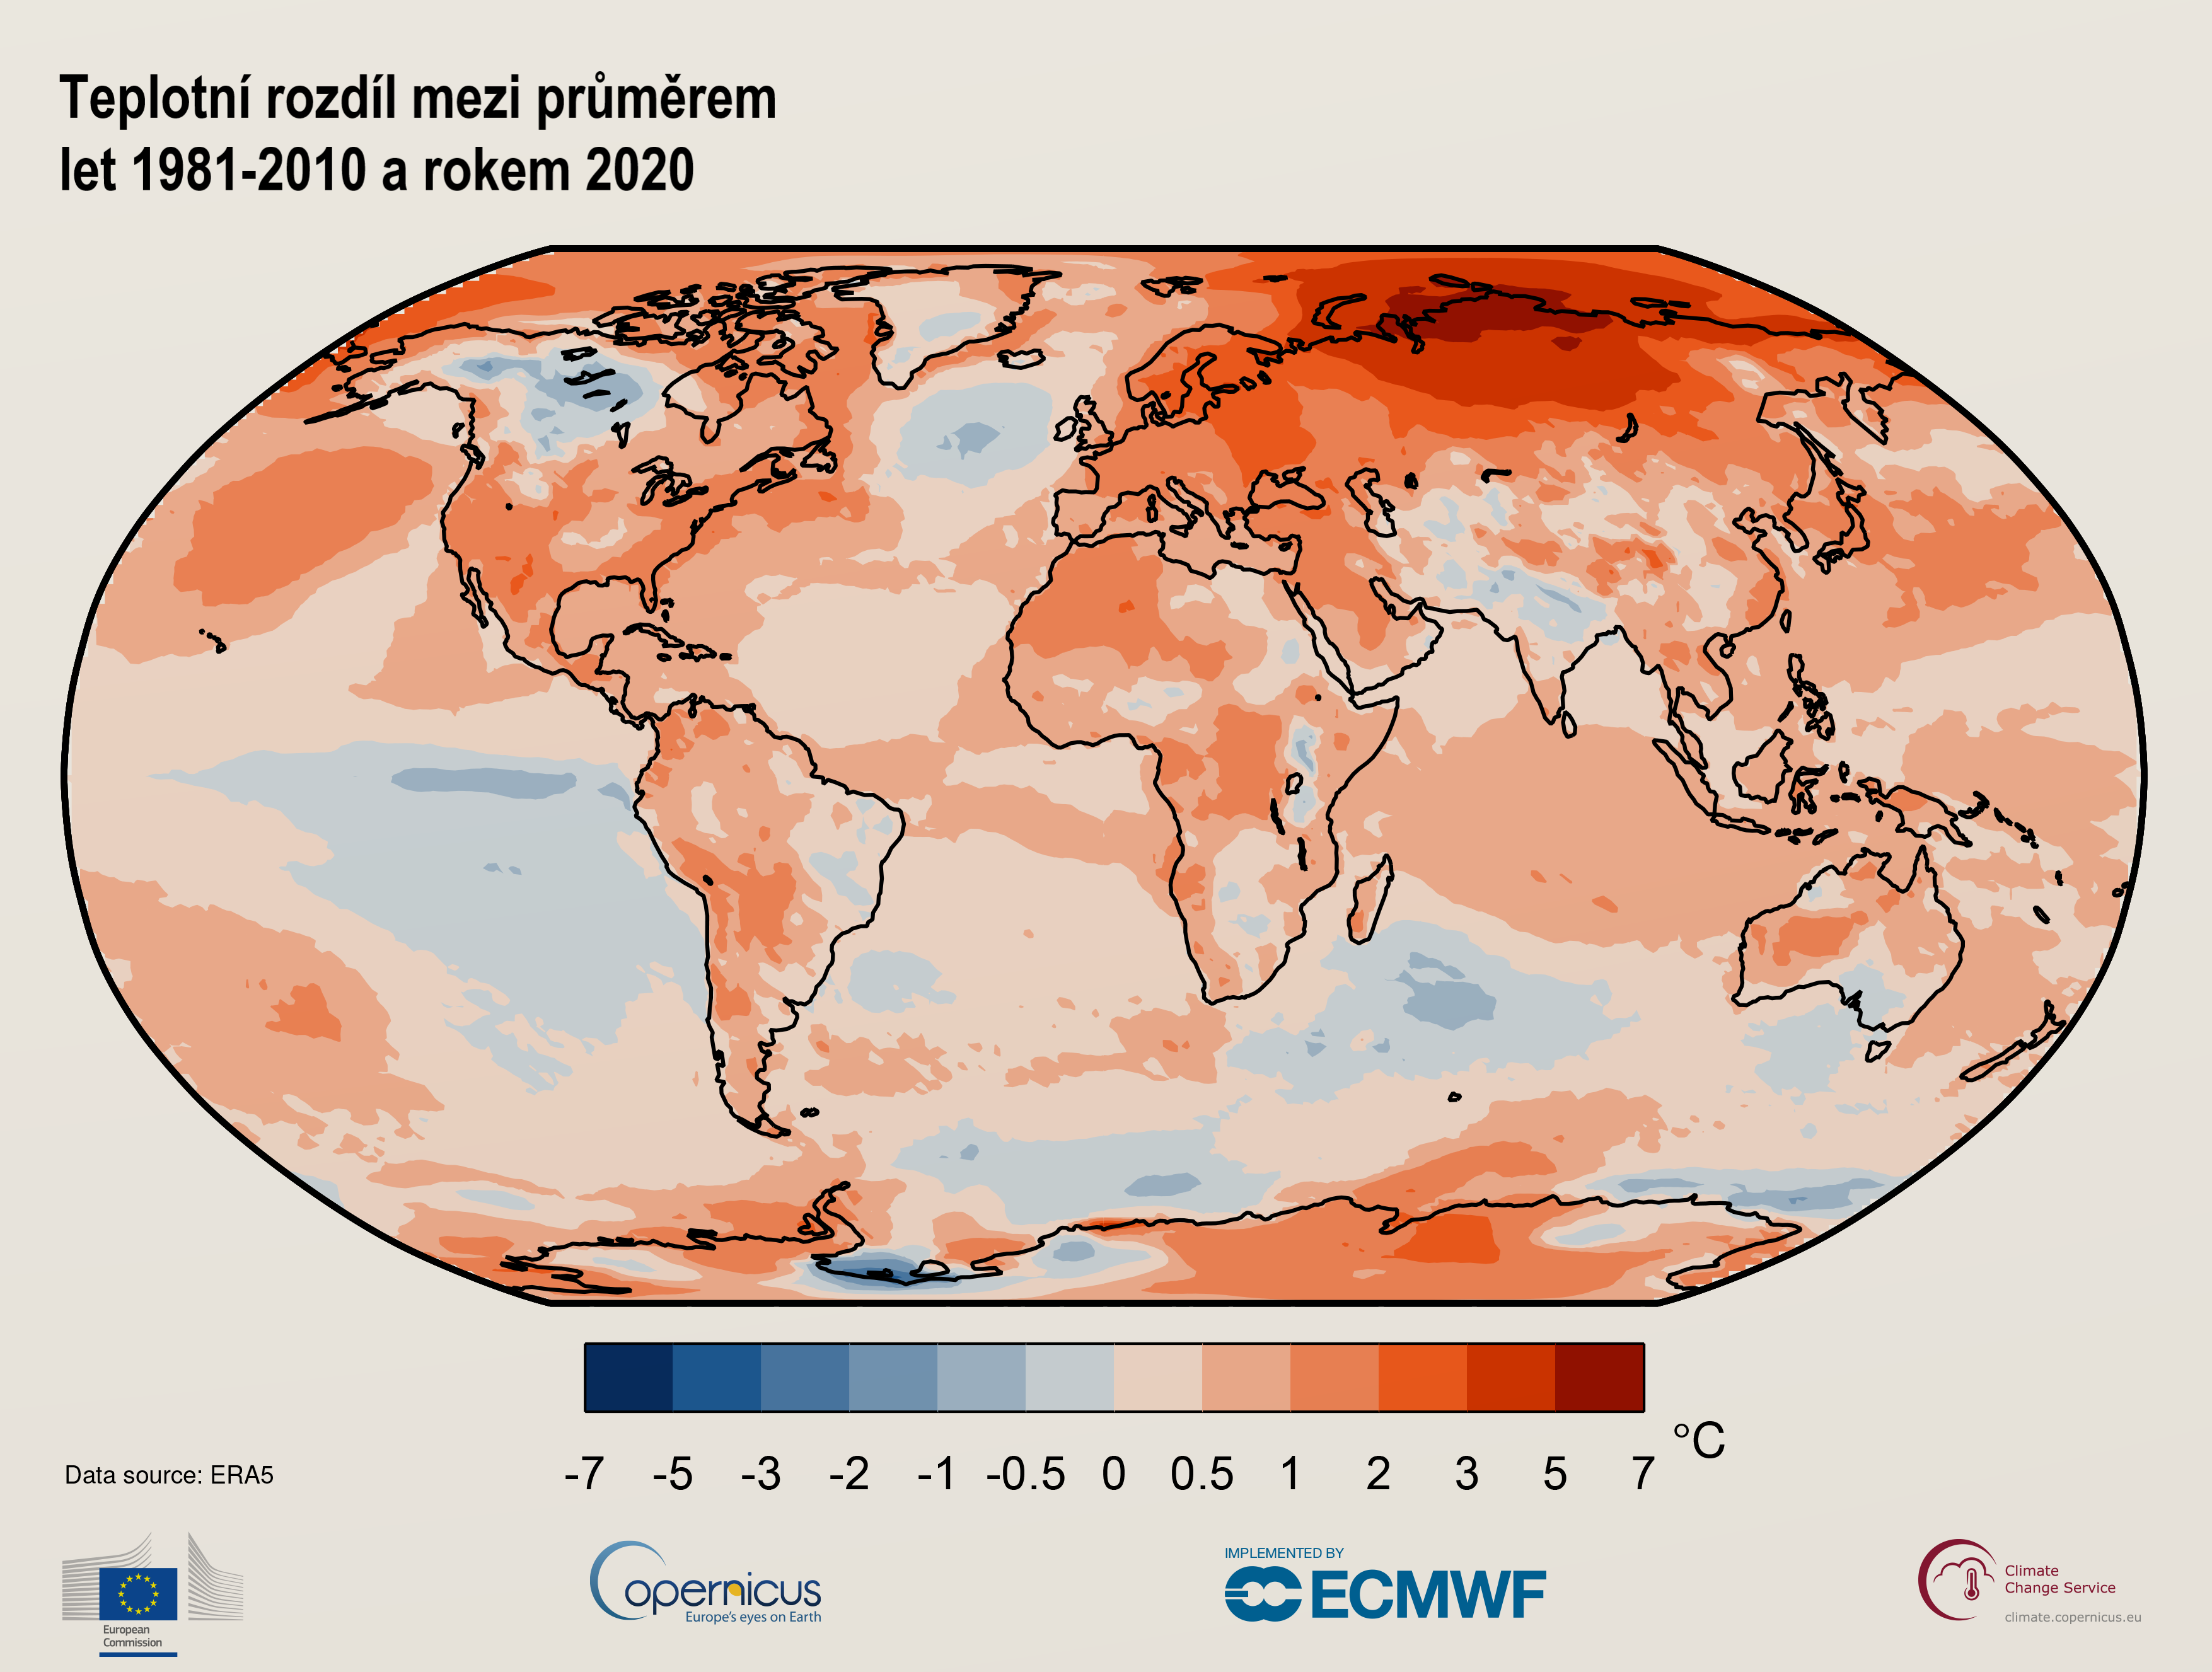 C3S_PR_Jan2021_Fig1_12month_anomaly_Global_ea_2t_202001-202012 x